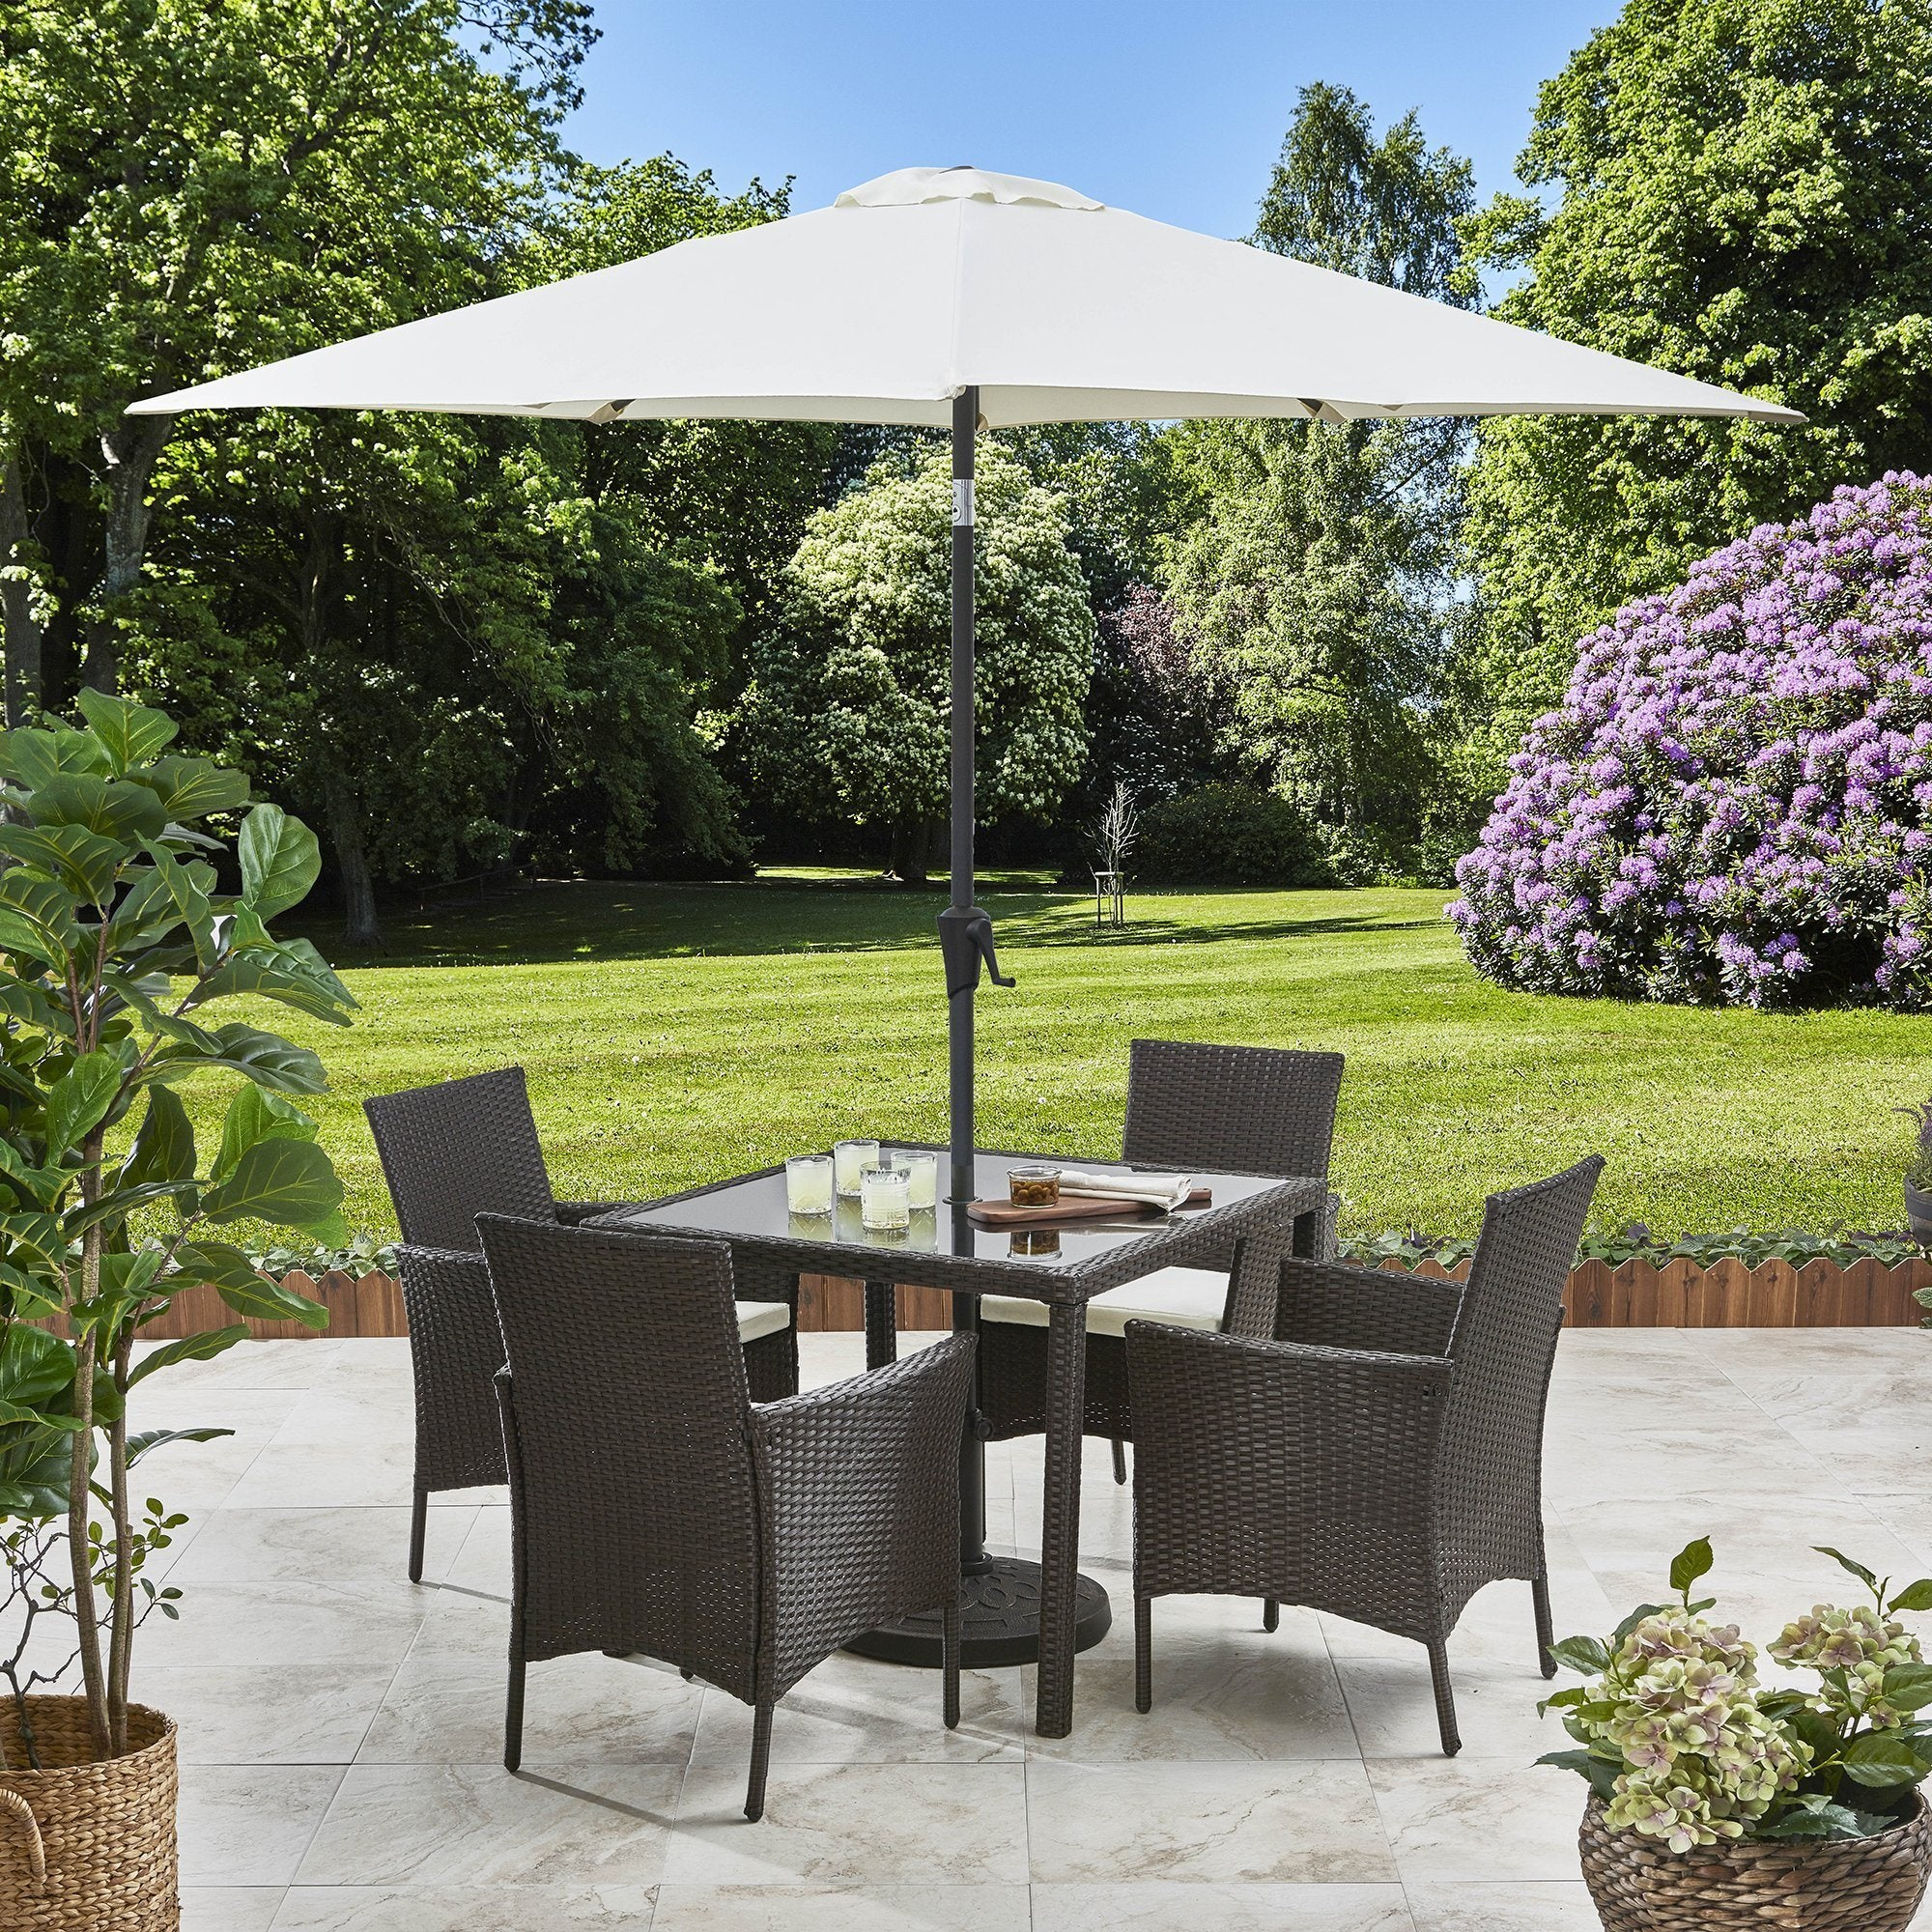 4 Seater Rattan Dining Set with Parasol - Rattan Garden Furniture - Brown - Laura James